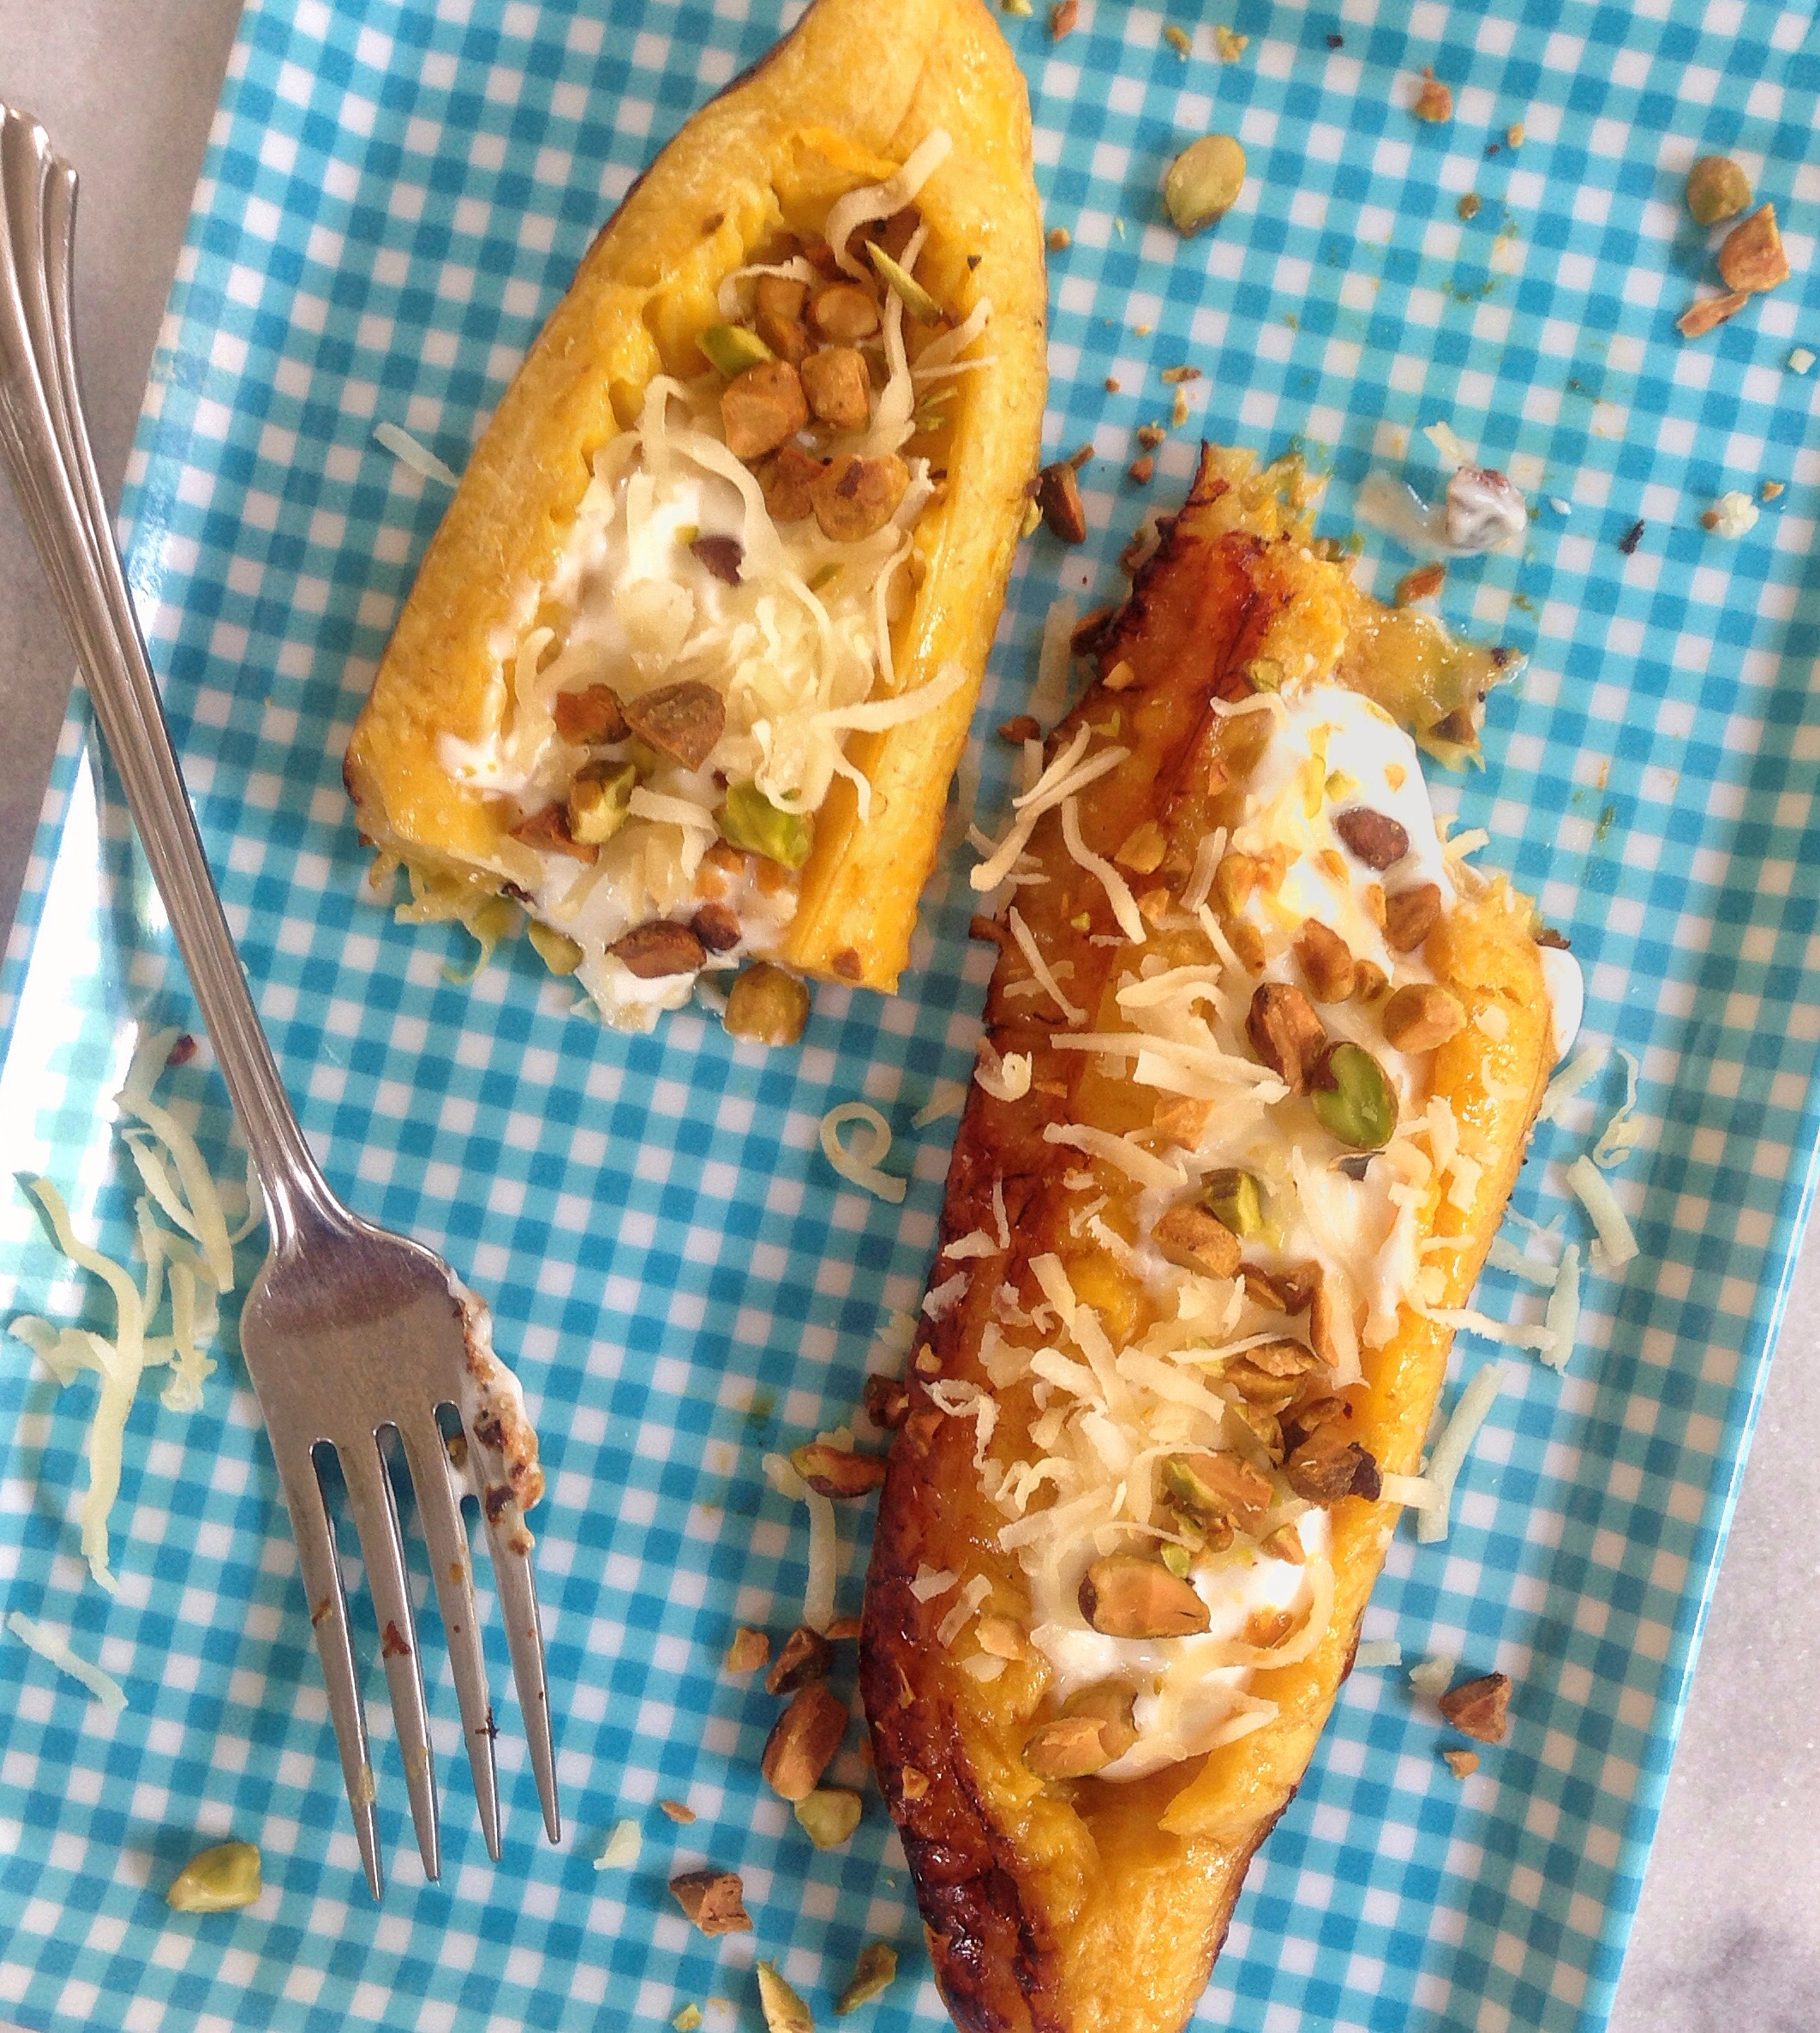 Roasted Plantain Boats filled with Greek Yogurt, Coconut, & Pistachios